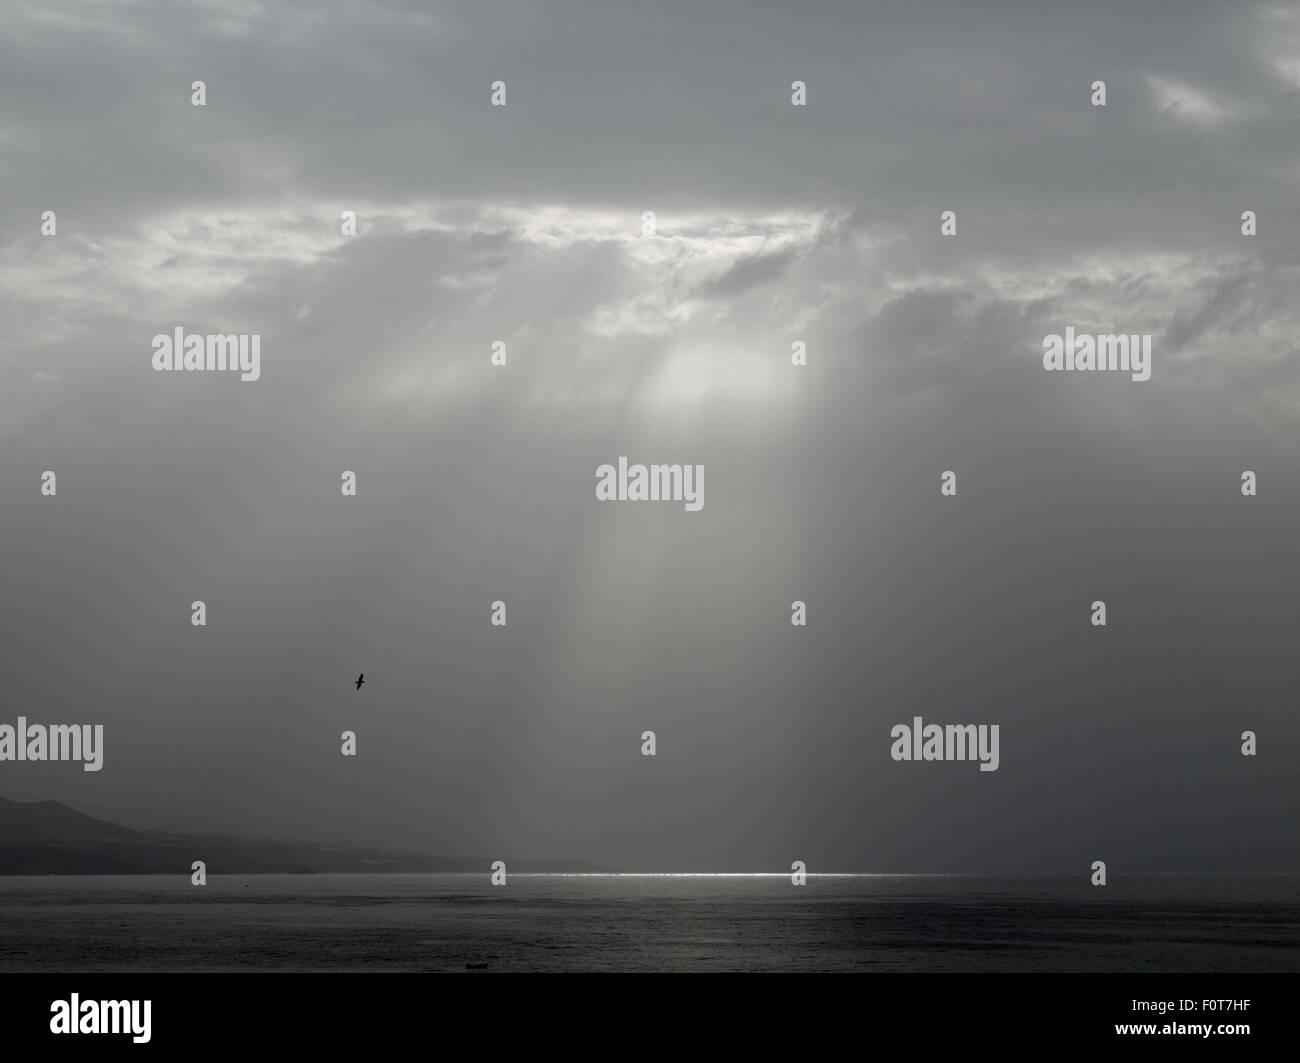 cloudy sky with a single gap in the clouds through which sun rays come - Stock Image